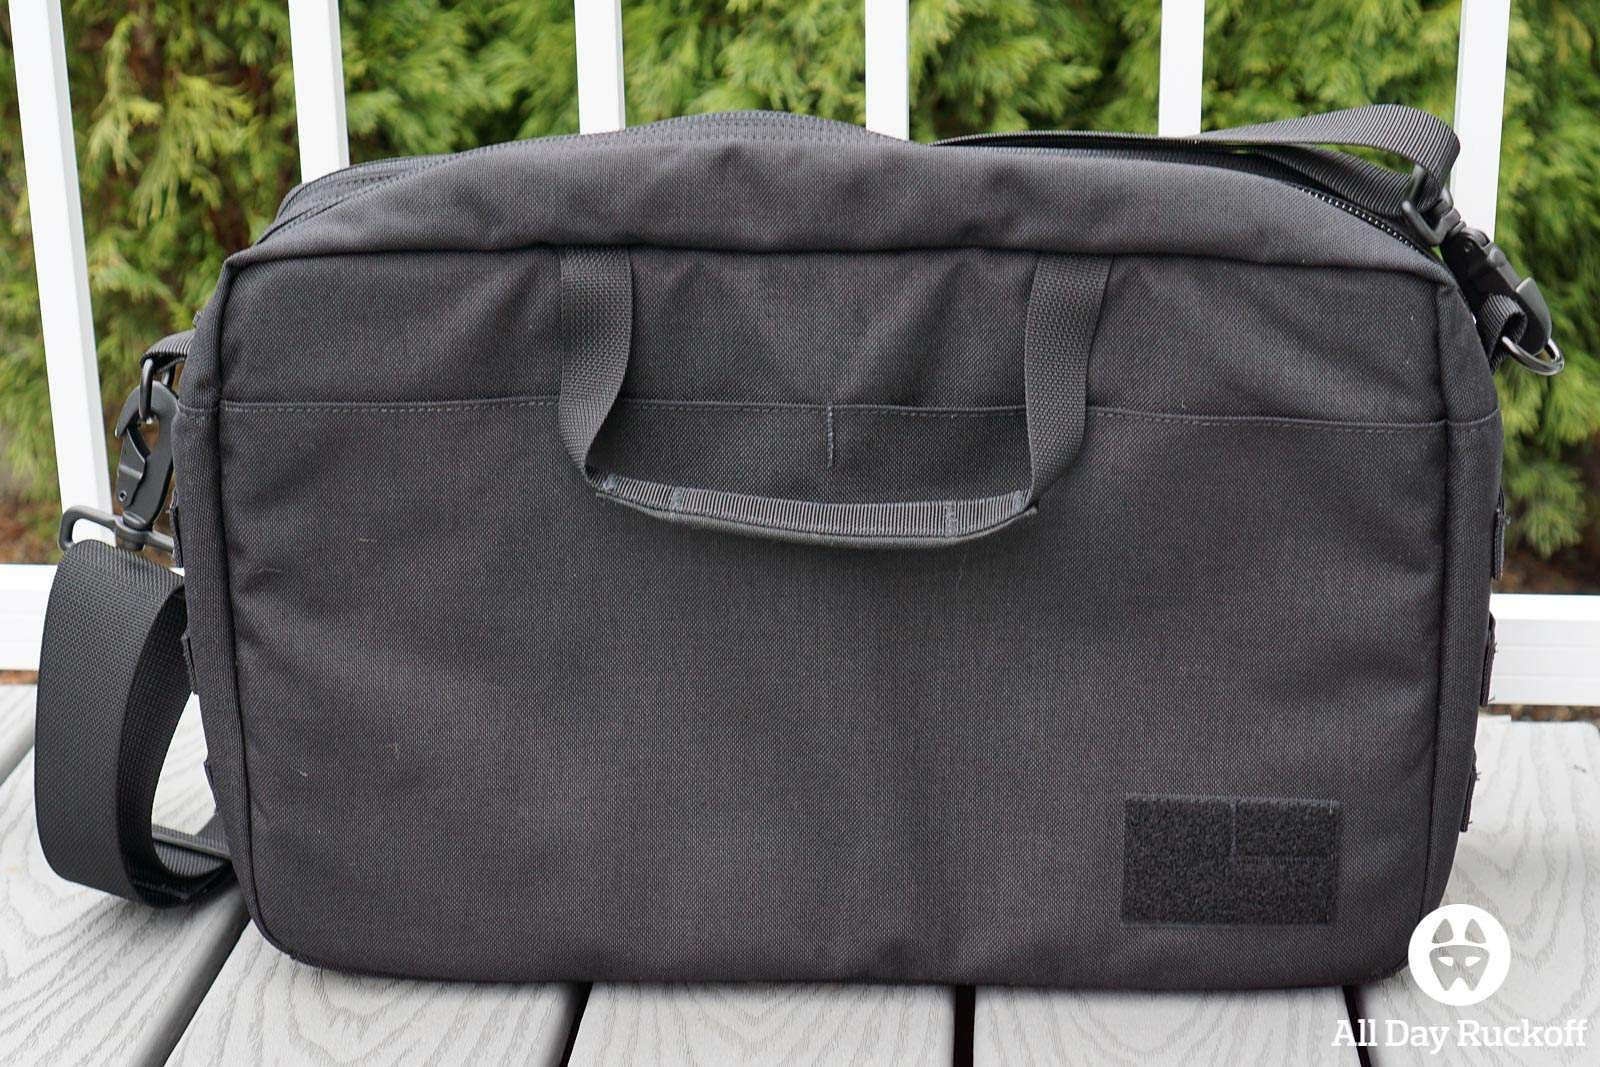 GORUCK Shoulder Bag 15L - Front